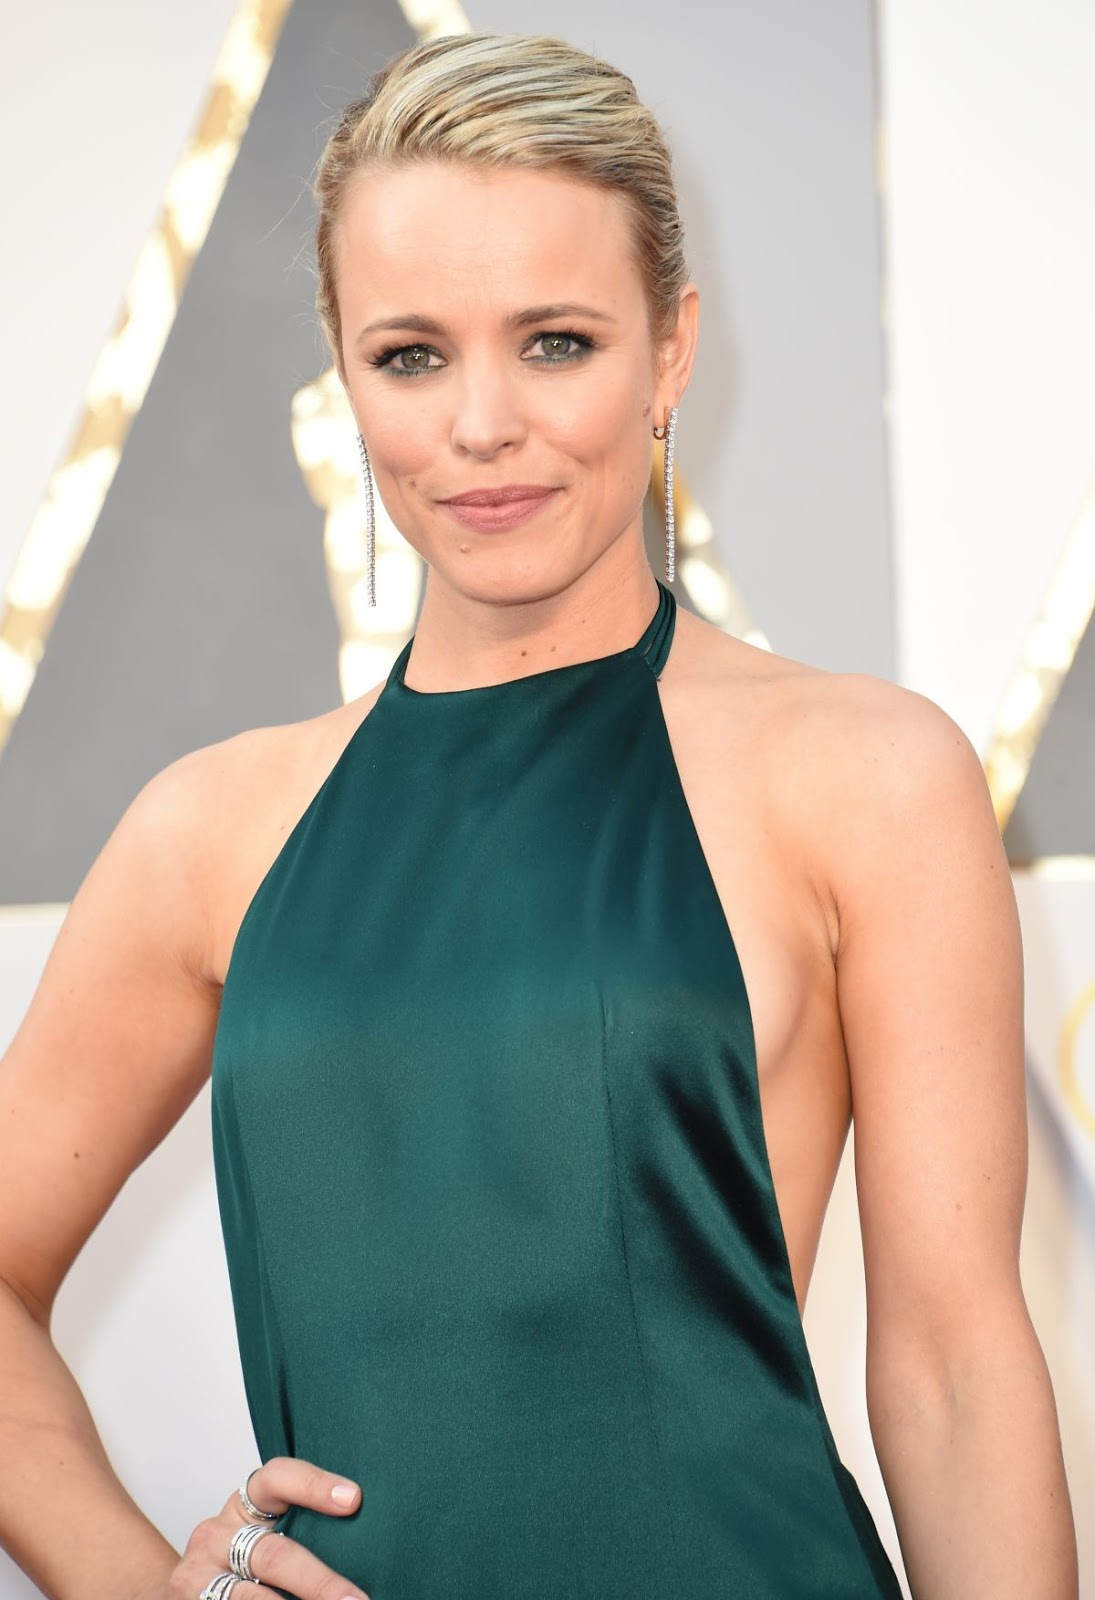 Spotlight actress Rachel Mcadams at 88th Annual Academy Awards